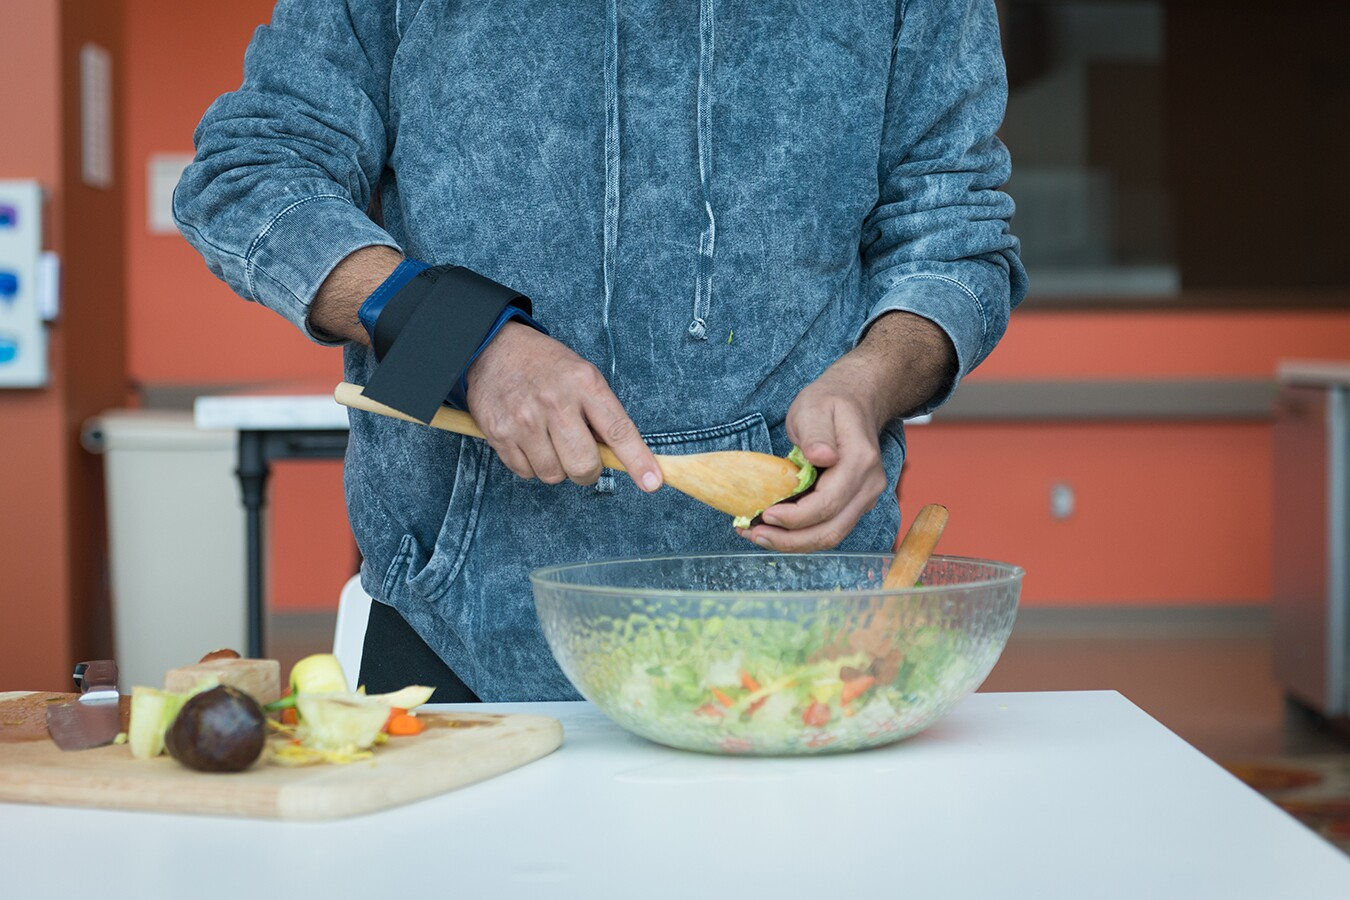 Perez's hands trembled as he tried to cut vegetables, so a weighted band was wrapped around his wrist to help keep him steady.